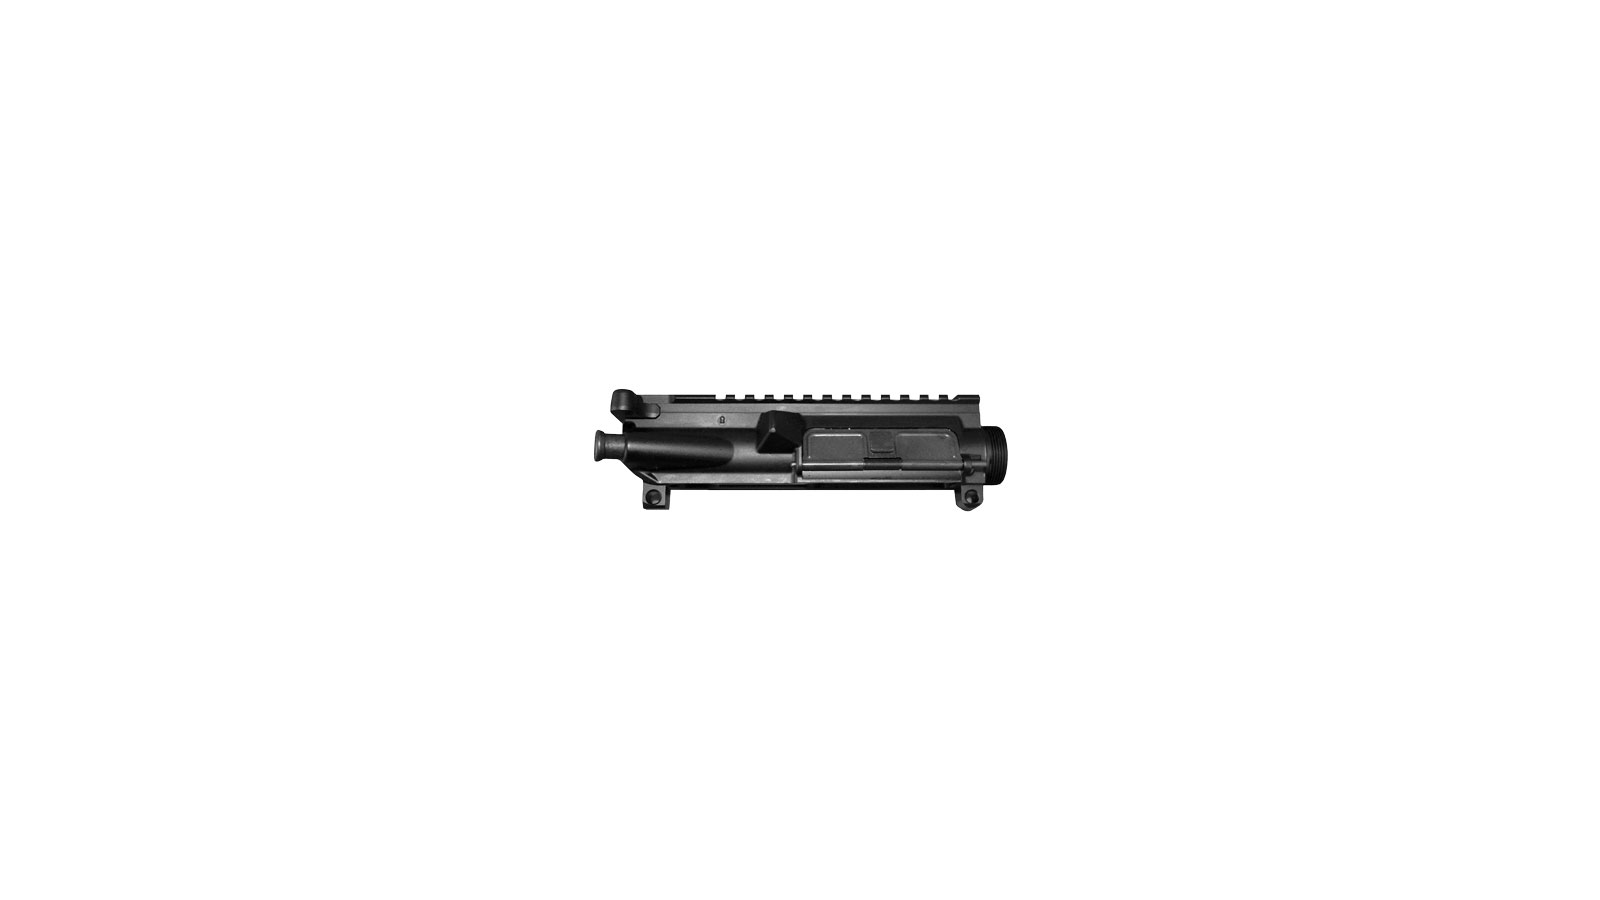 Anderson AR-15 Stripped Upper Receiver, Multi-Caliber, Charging Handle and Forward Assist